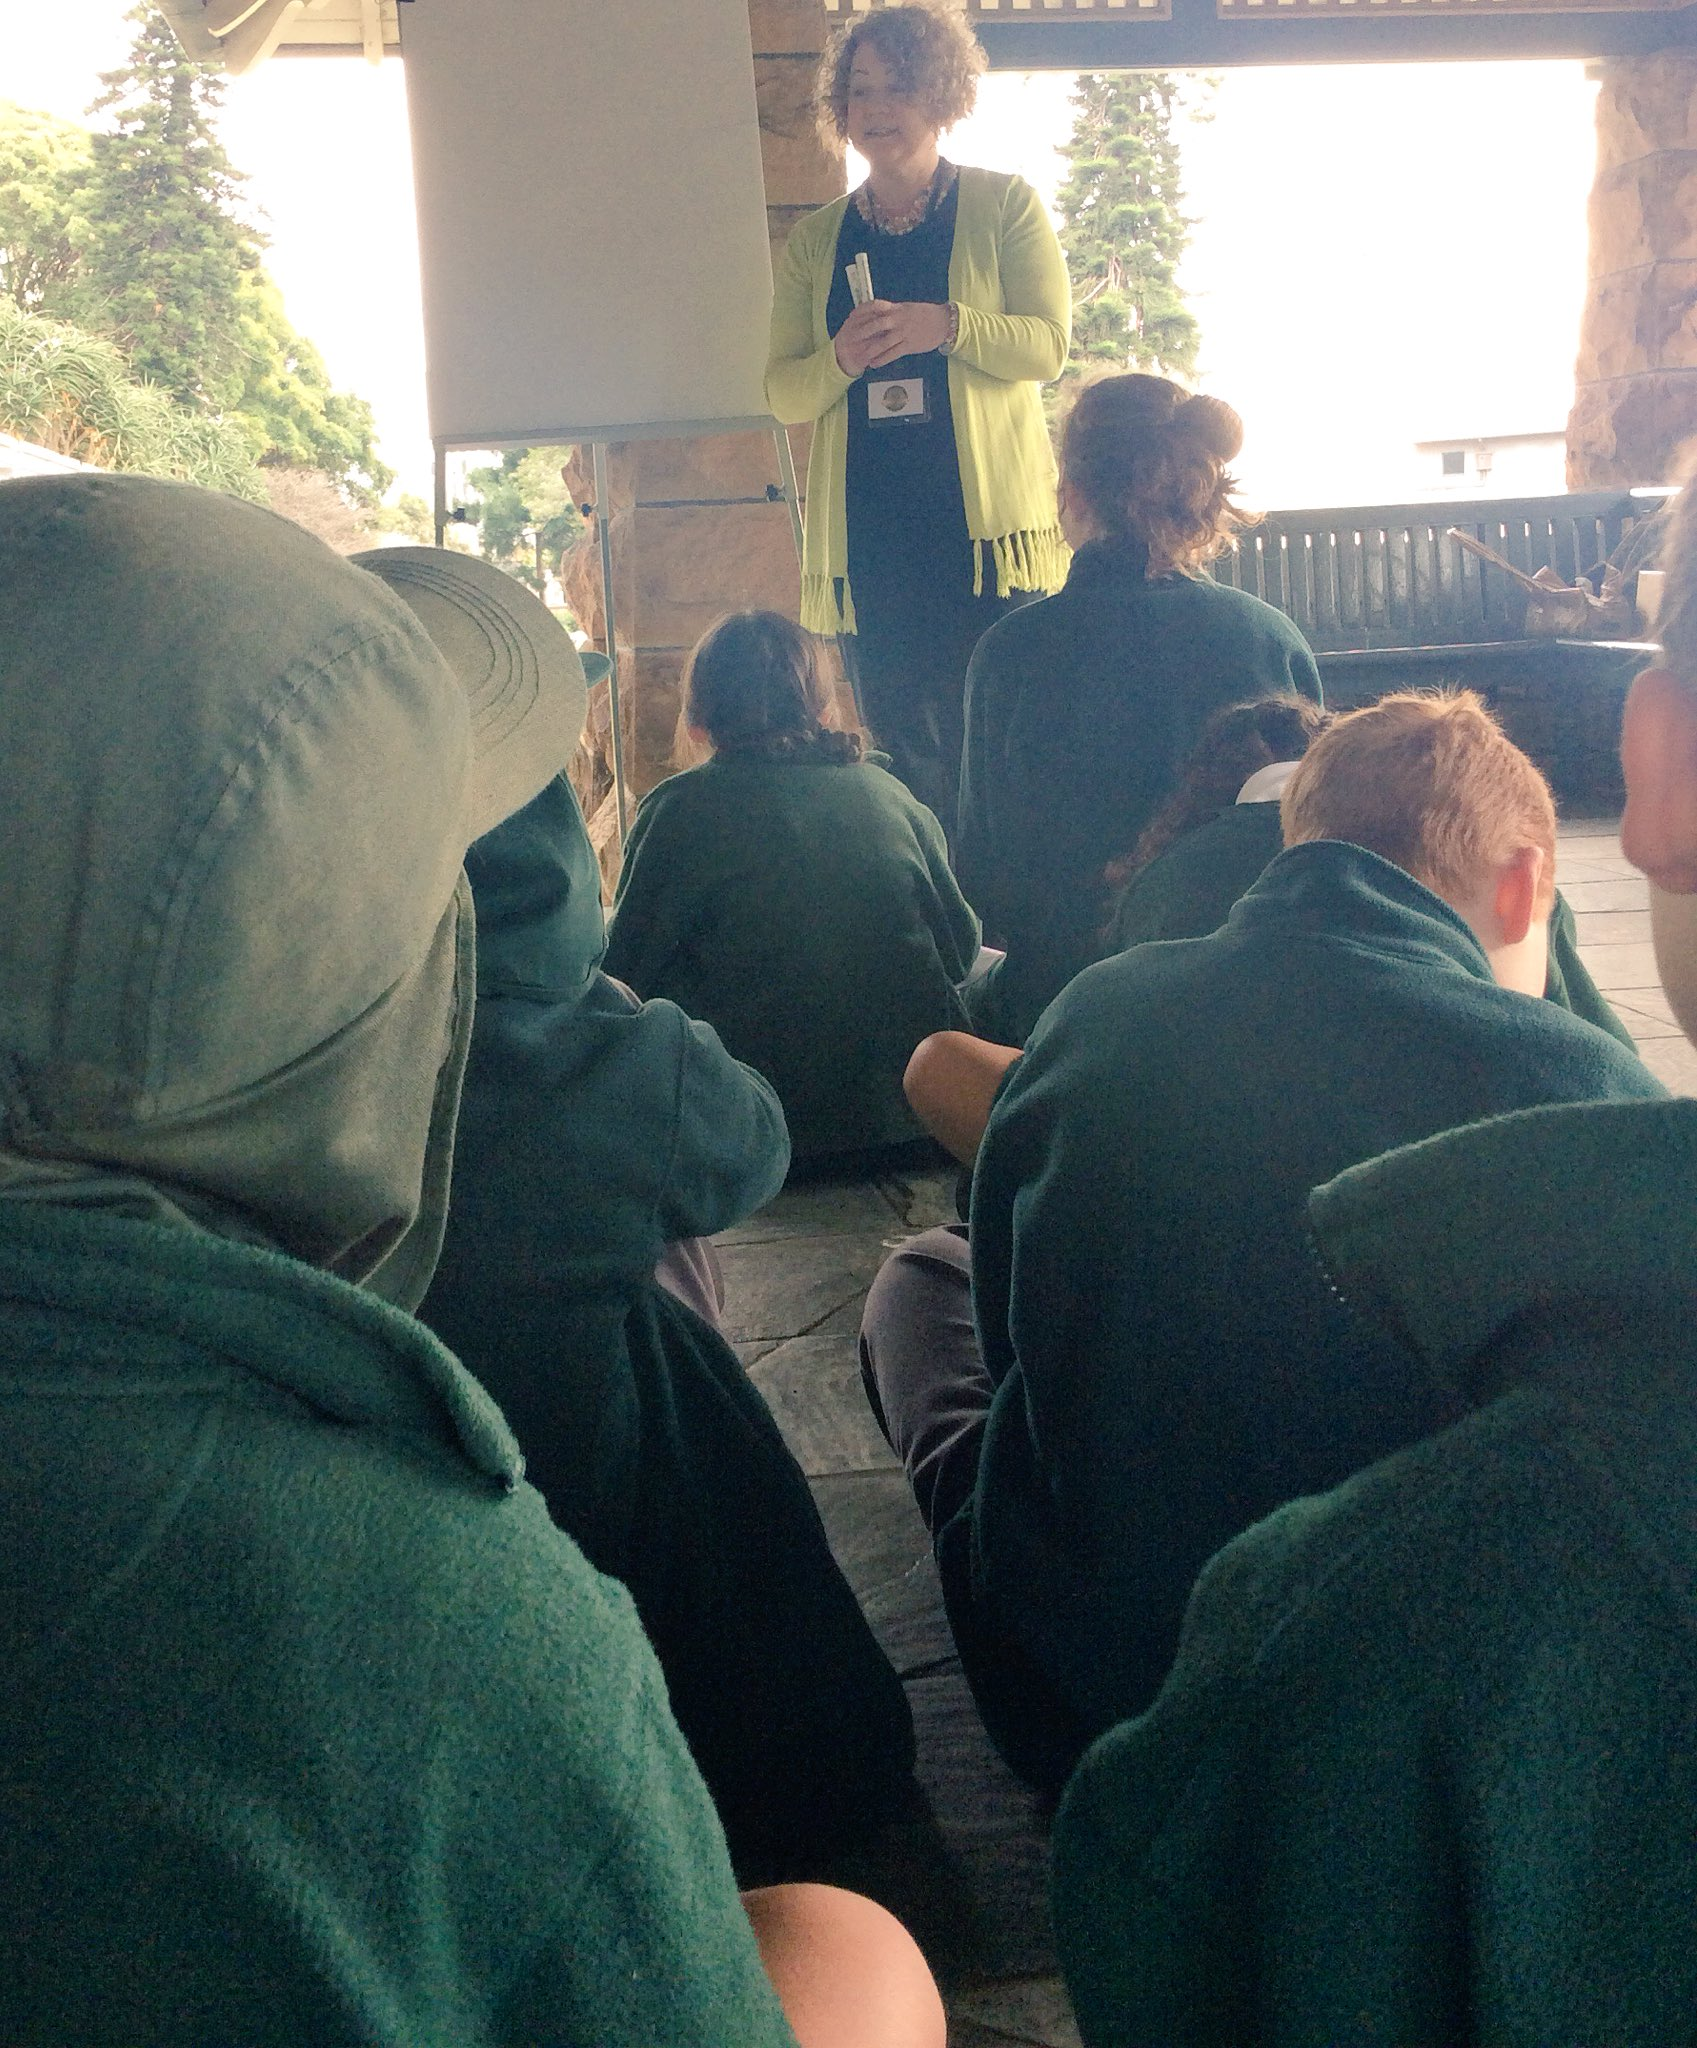 First workshop with Darcy-Lee Tindale. Students learning how to write a play #EDWEEKNSW https://t.co/bZX7YDV5Bv